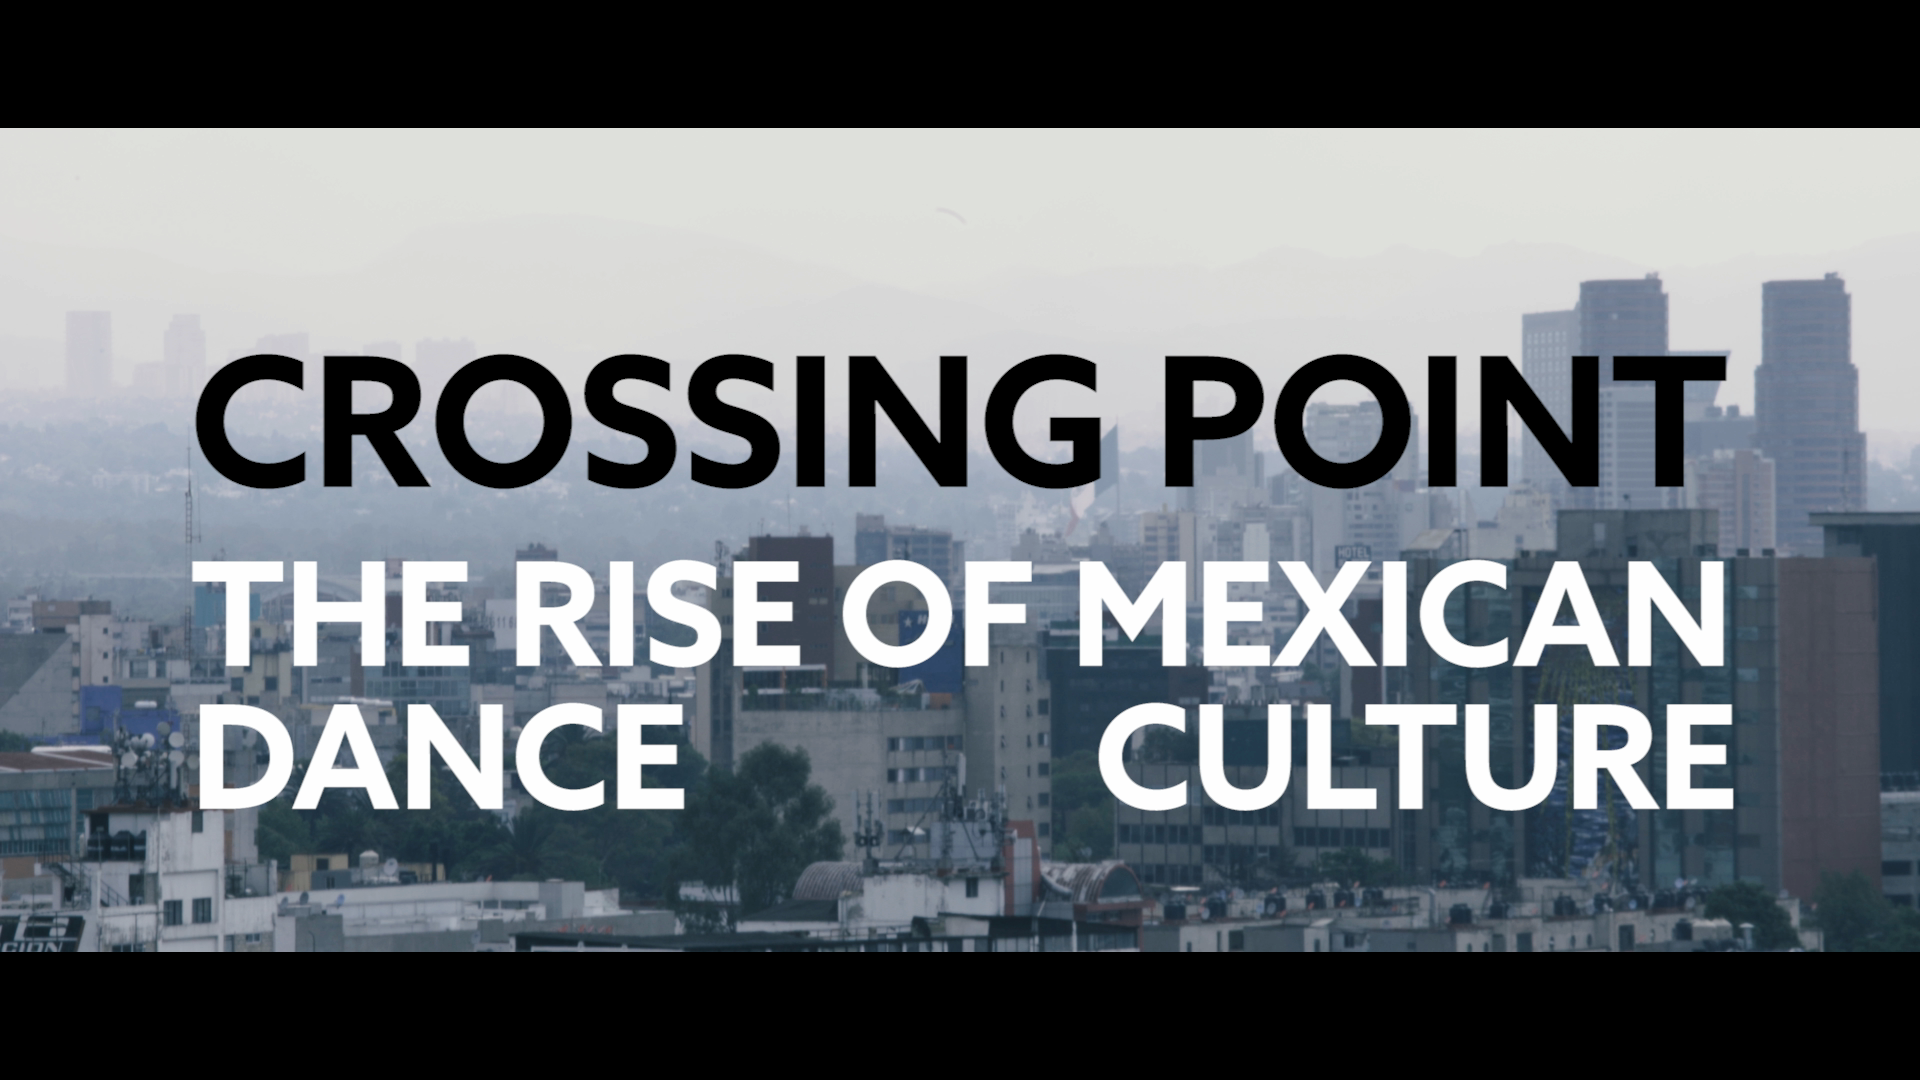 Crossing Point: The rise of Mexican dance culture